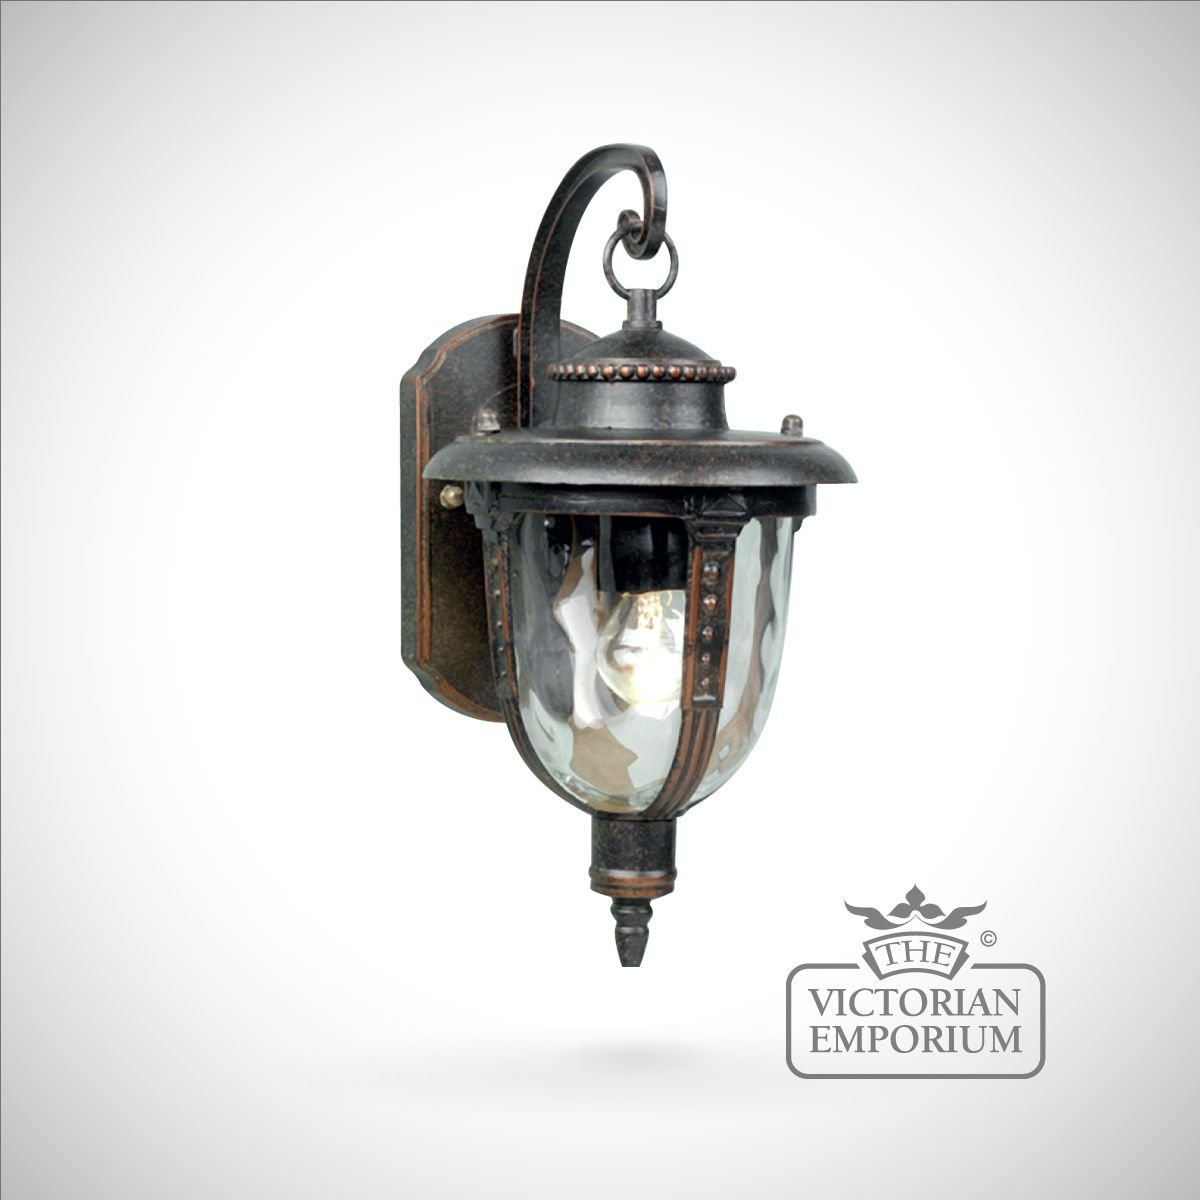 Large Decorative Wall Lights : Decorative wall lantern - small Outdoor Wall Lights